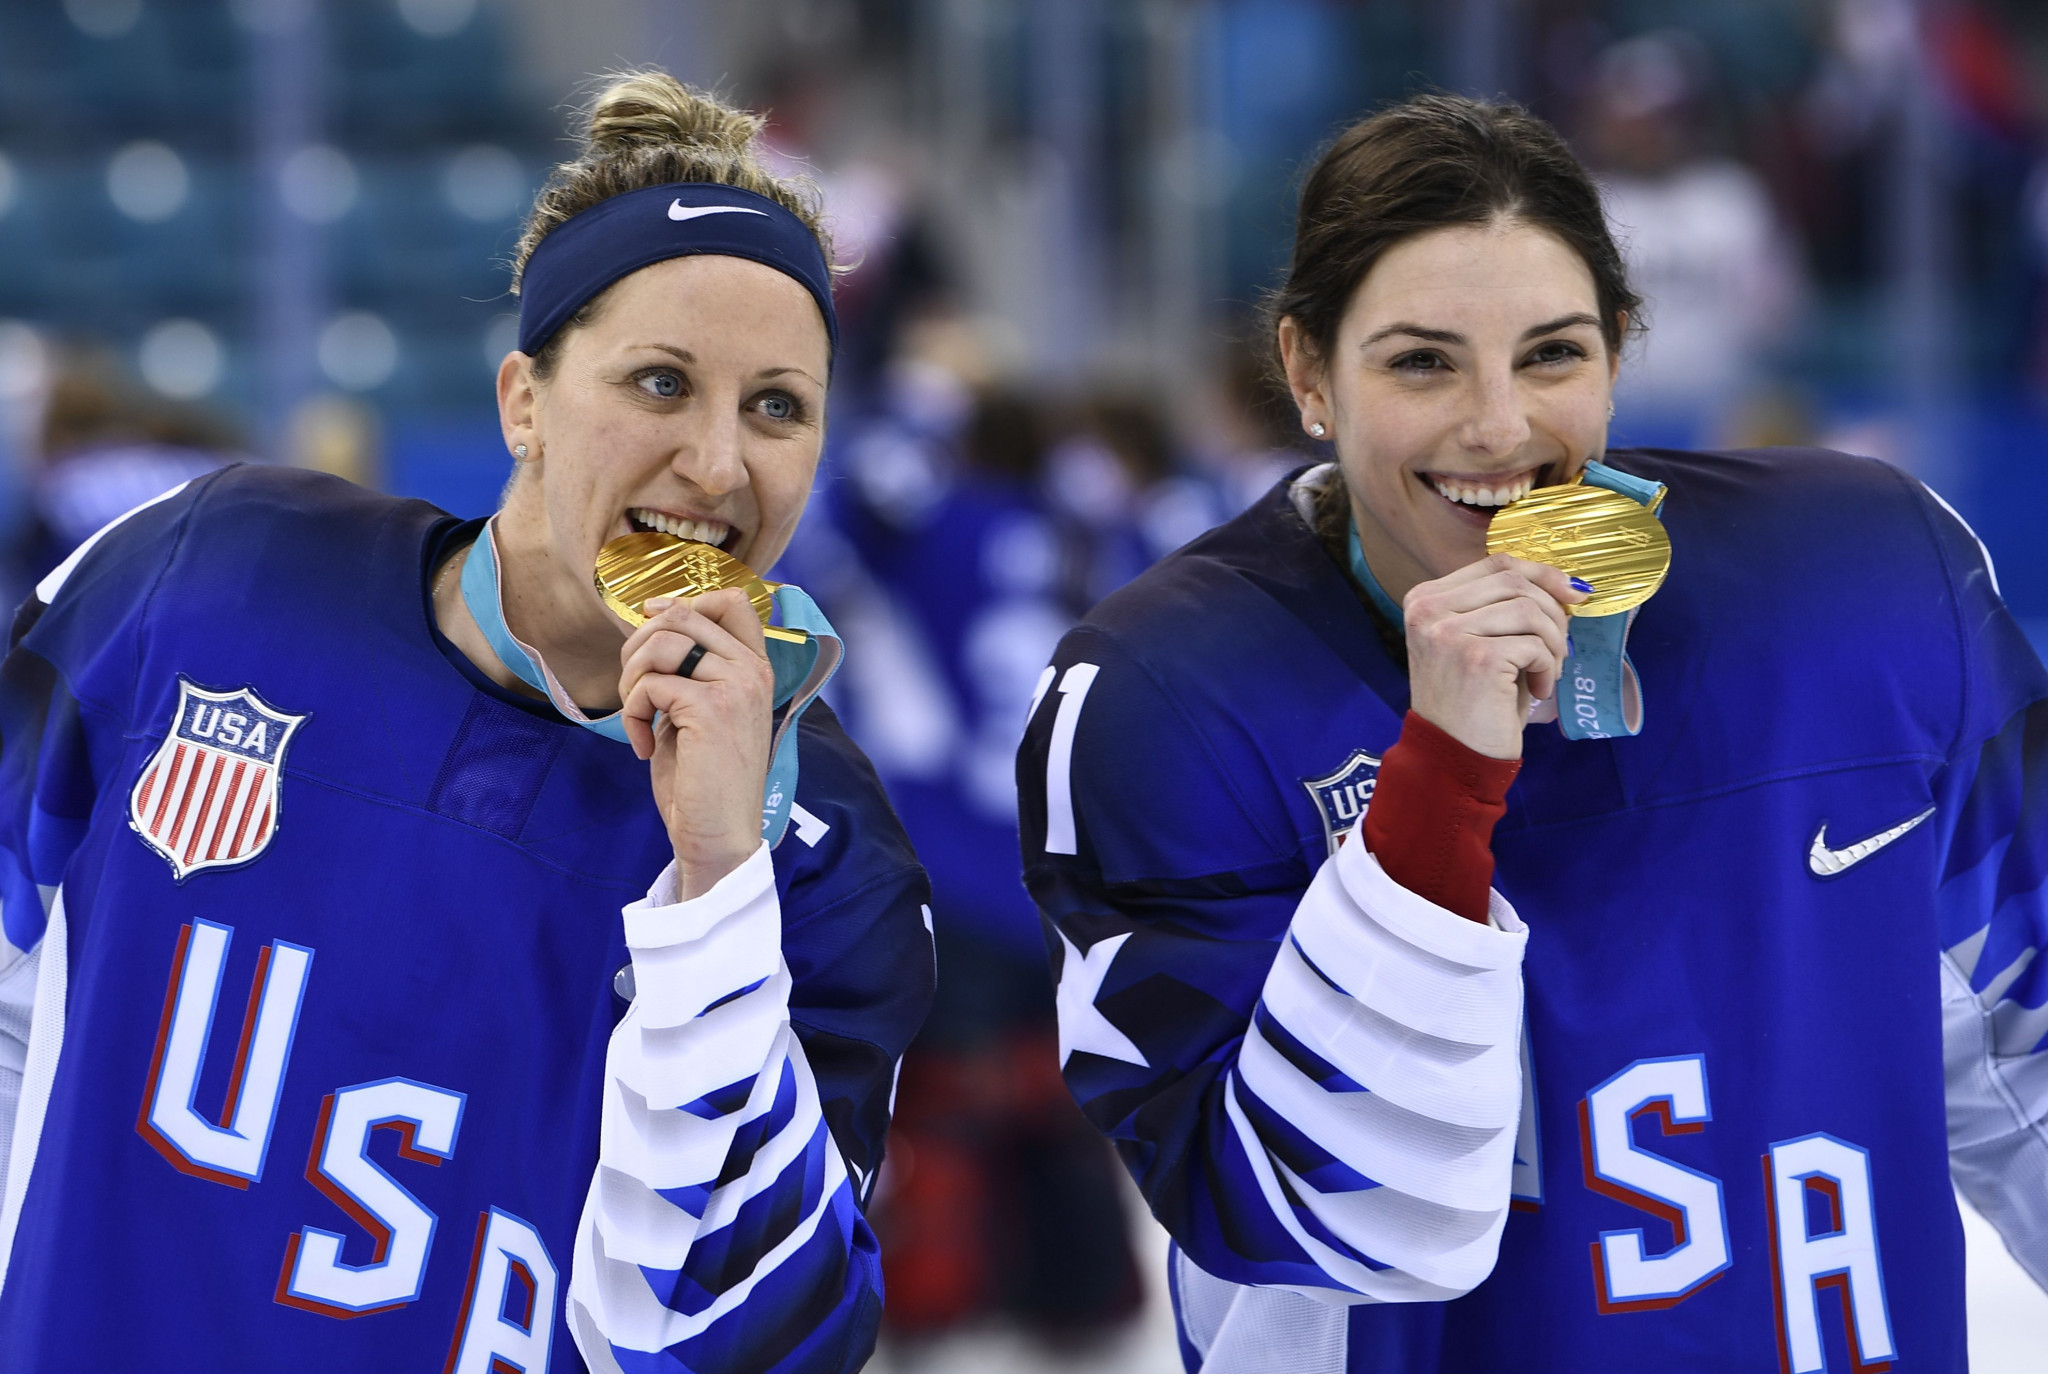 Women's competition to open Beijing 2022 Ice Hockey six days before men's event